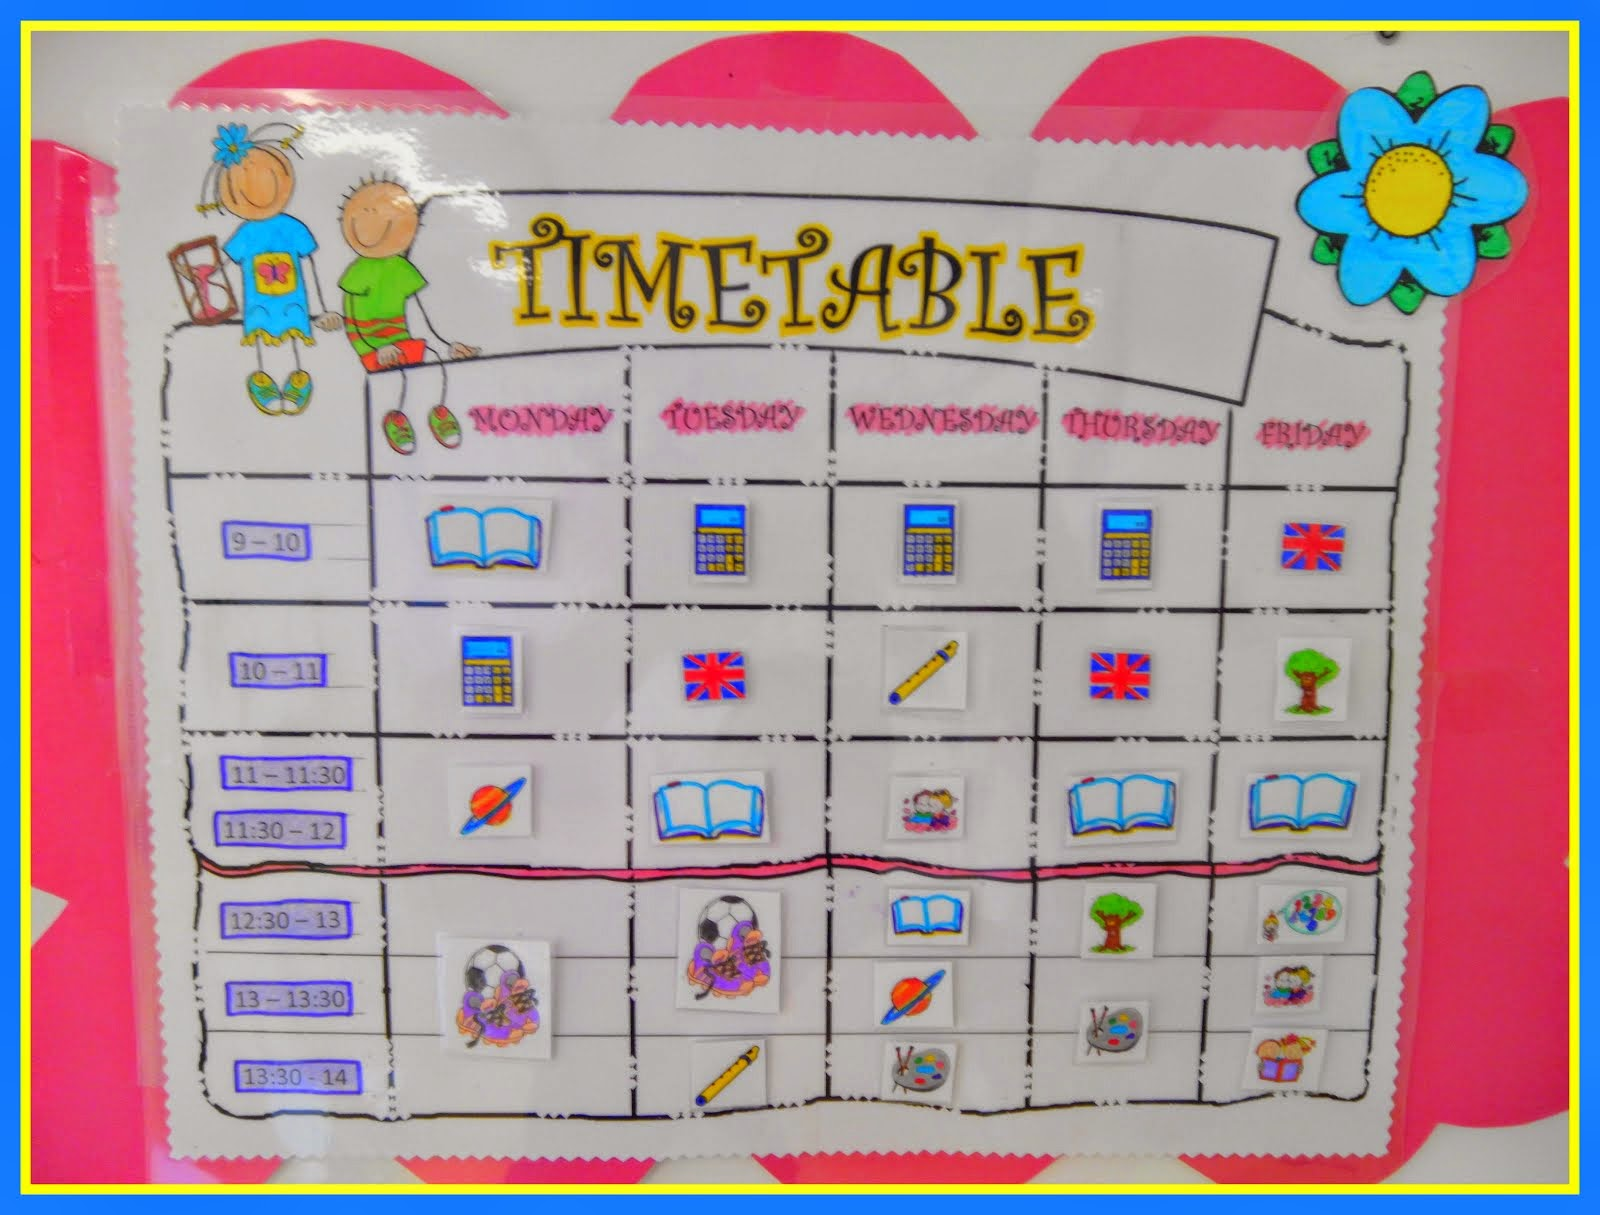 **TIMETABLE**